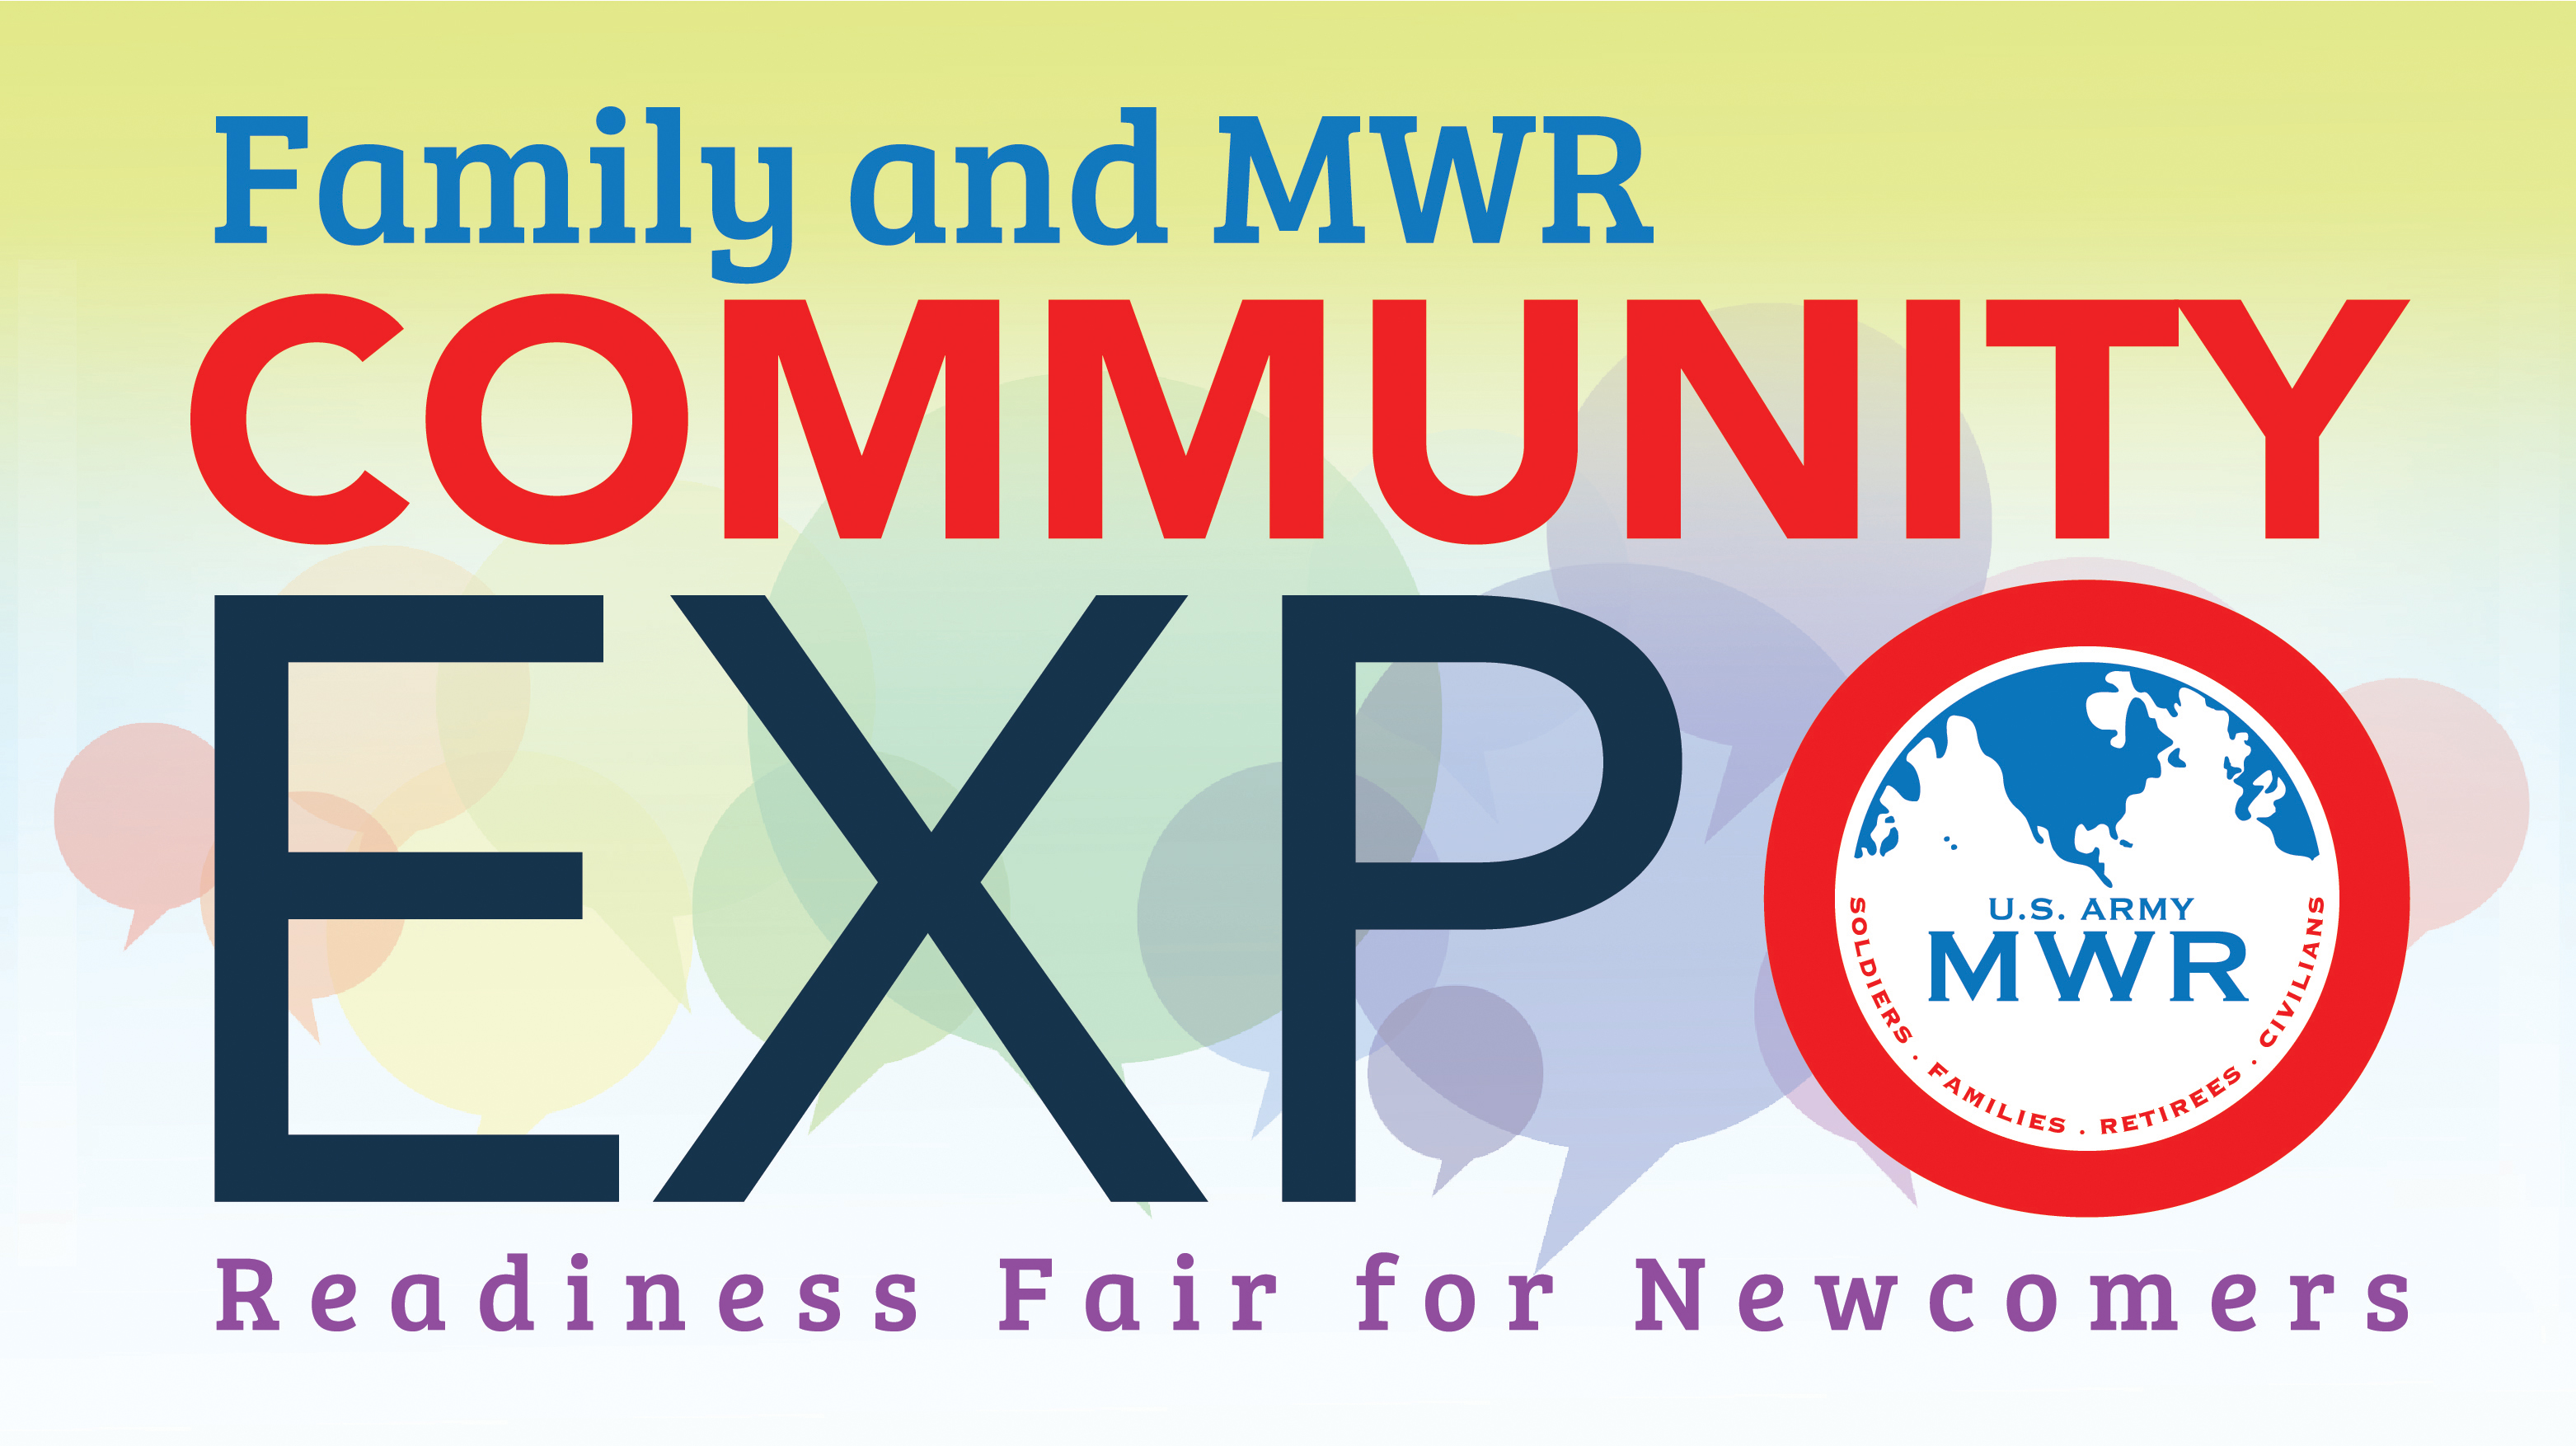 Family and MWR Community Expo